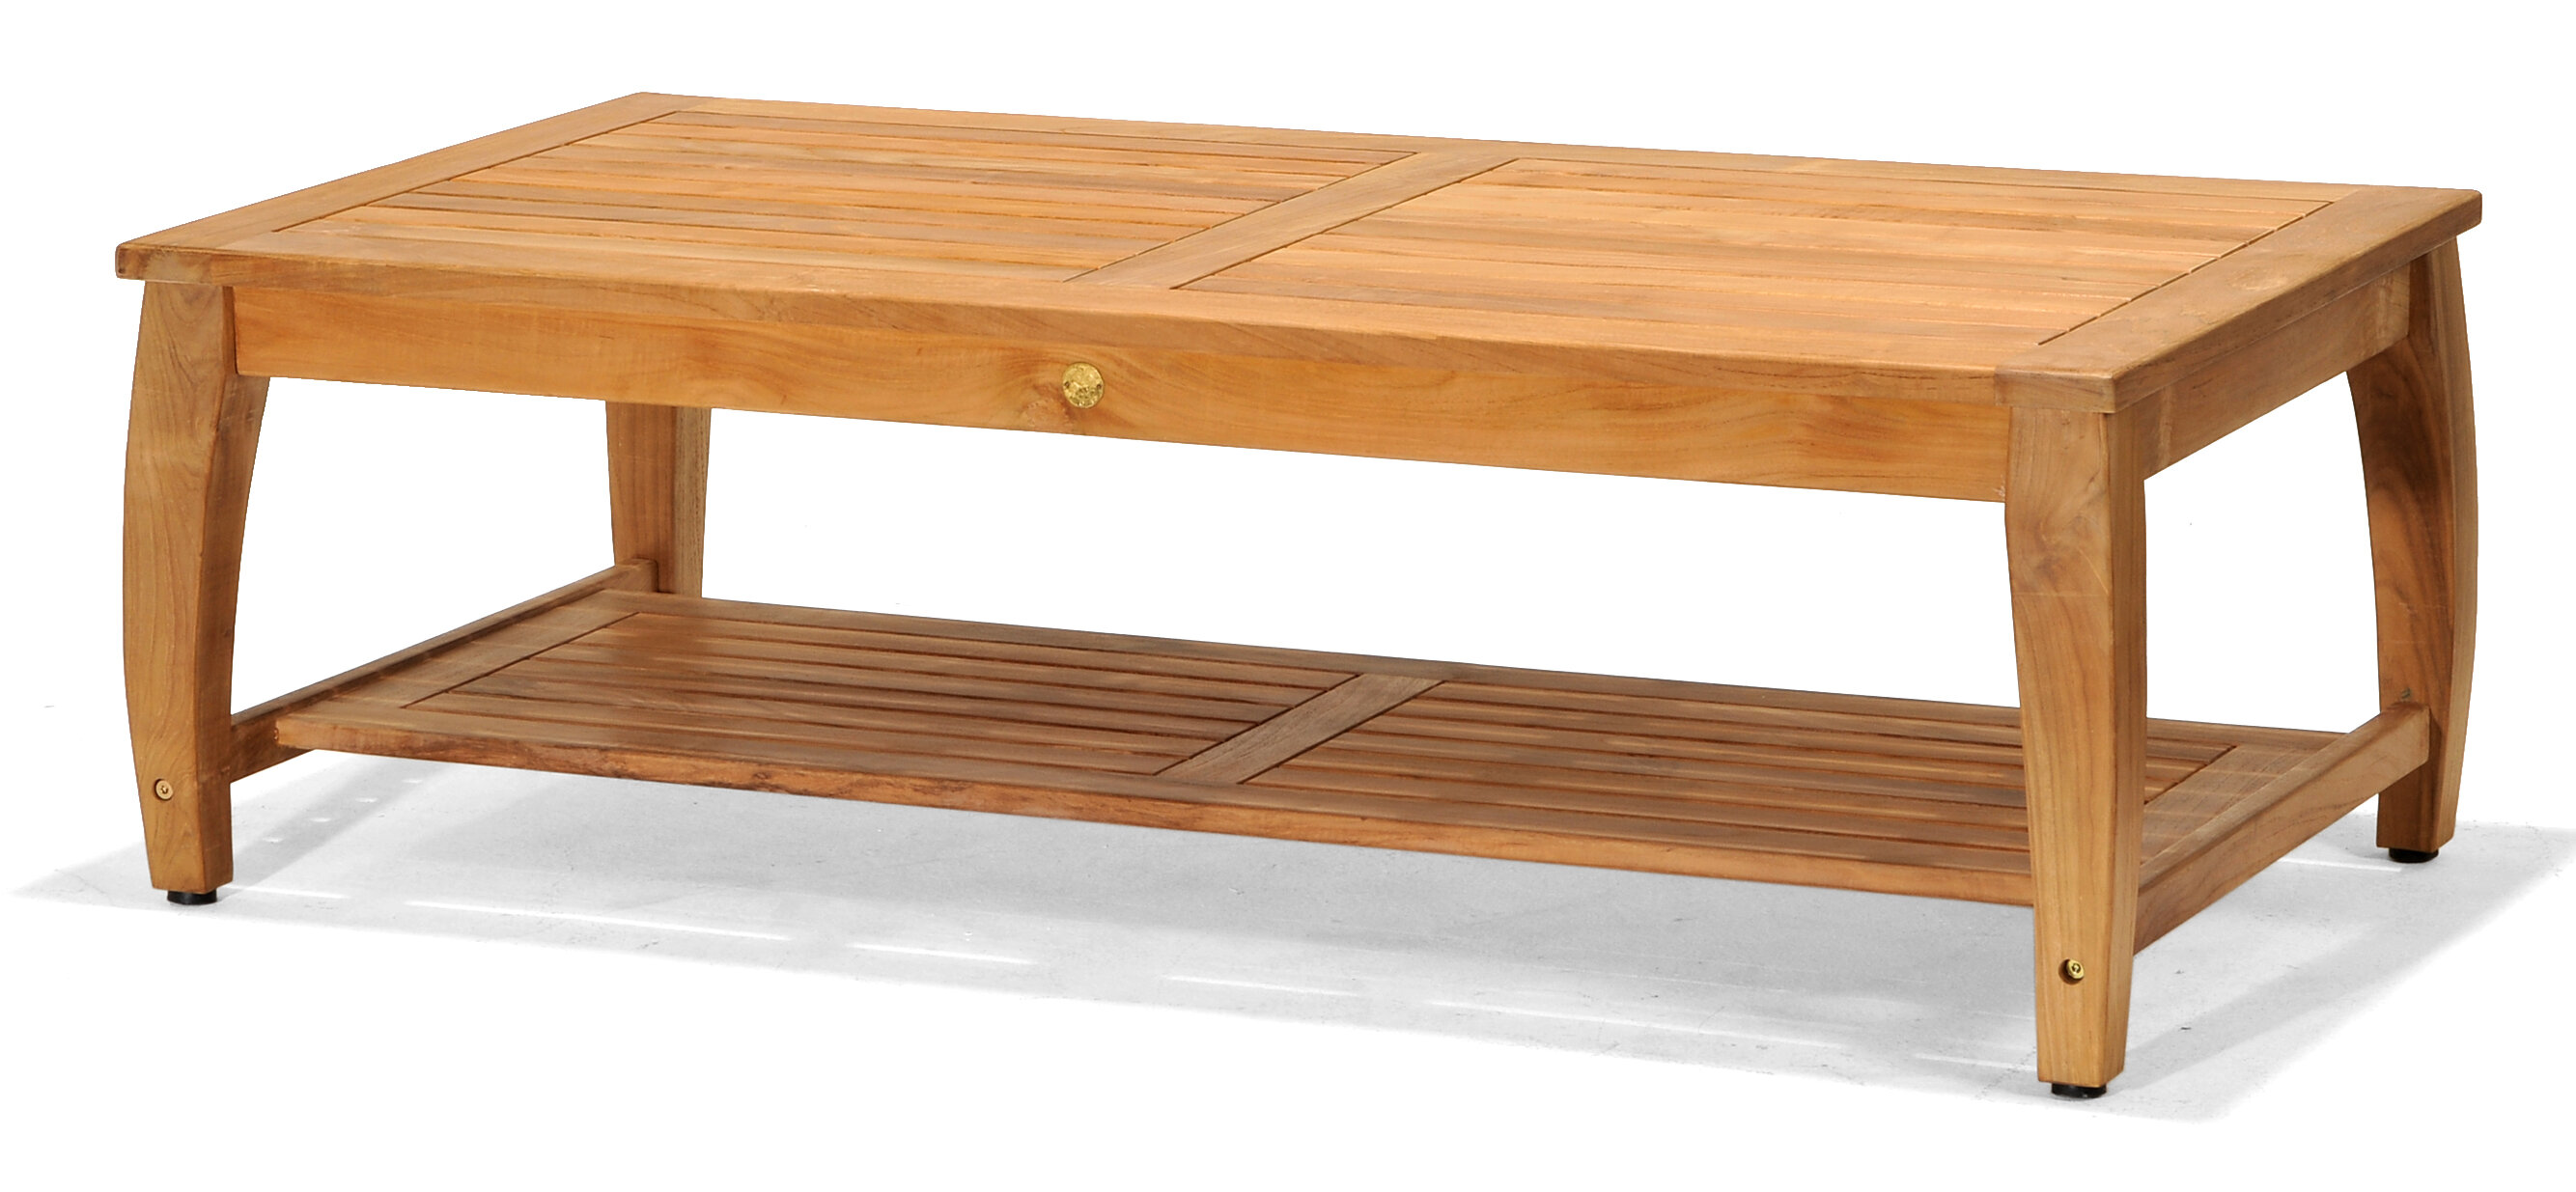 Ordinaire Forever Patio Miramar Teak Coffee Table | Wayfair